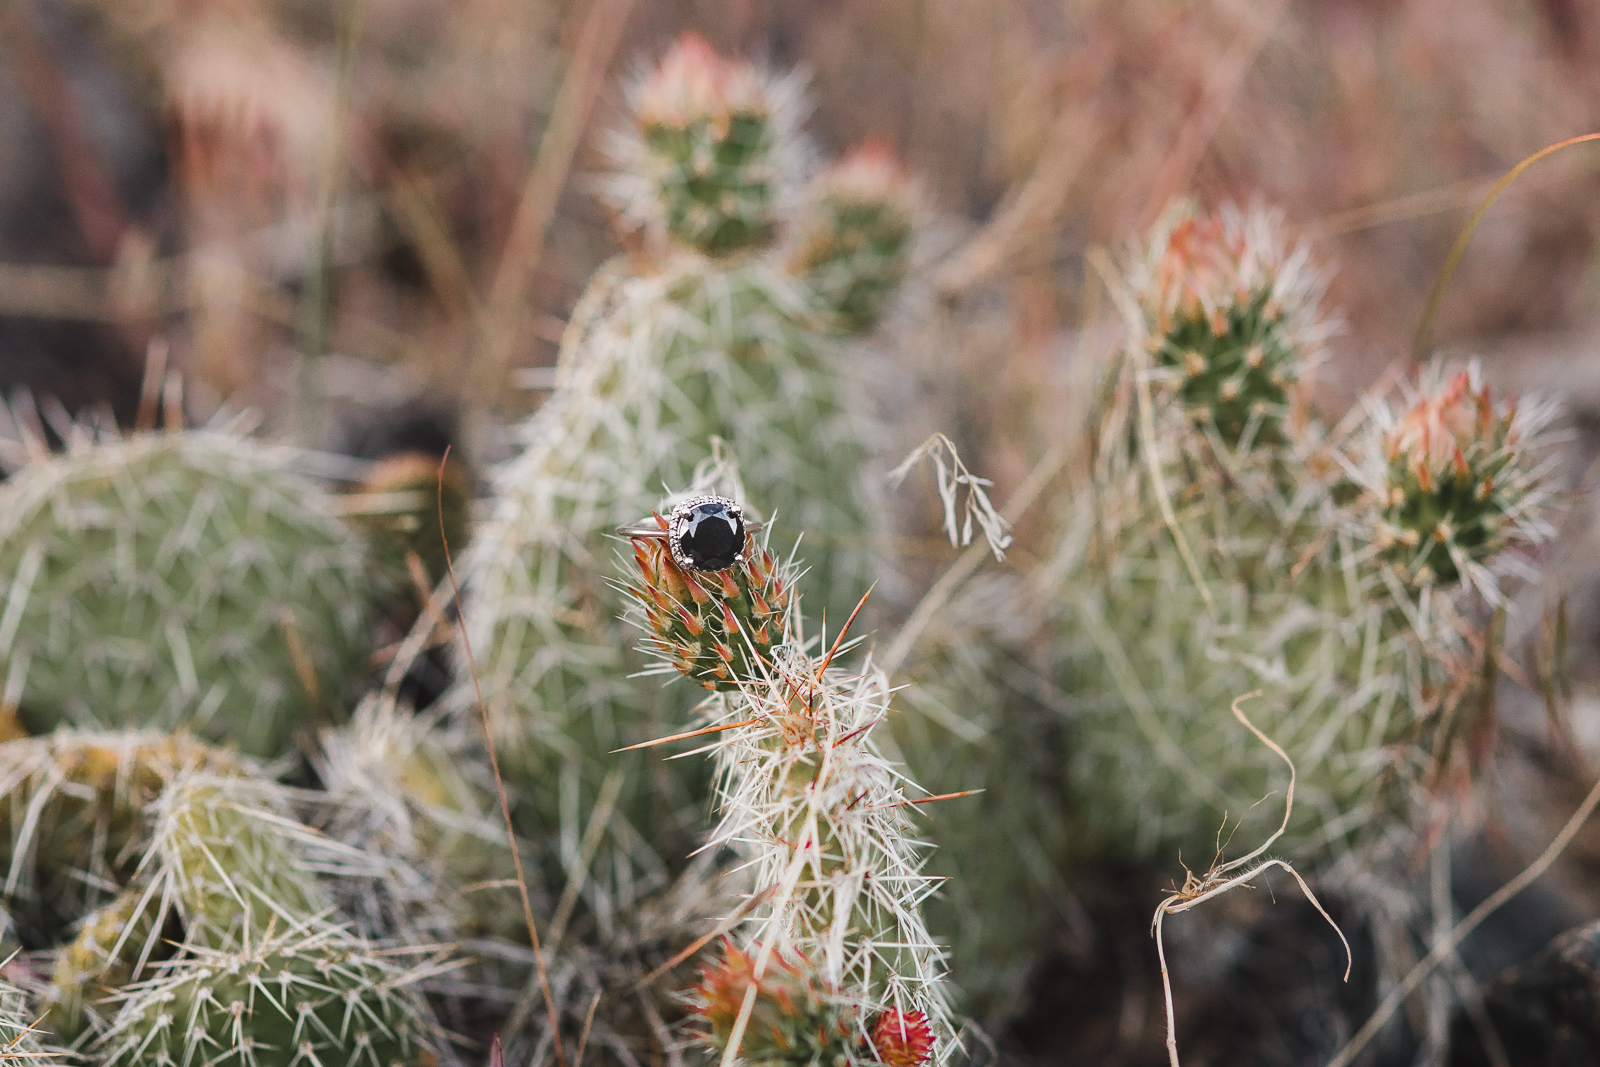 Engagement photography in Wyoming by Laramie based photographer, Encampment Wyoming, engagement ring, engagement ring with cactus, unique engagement ring